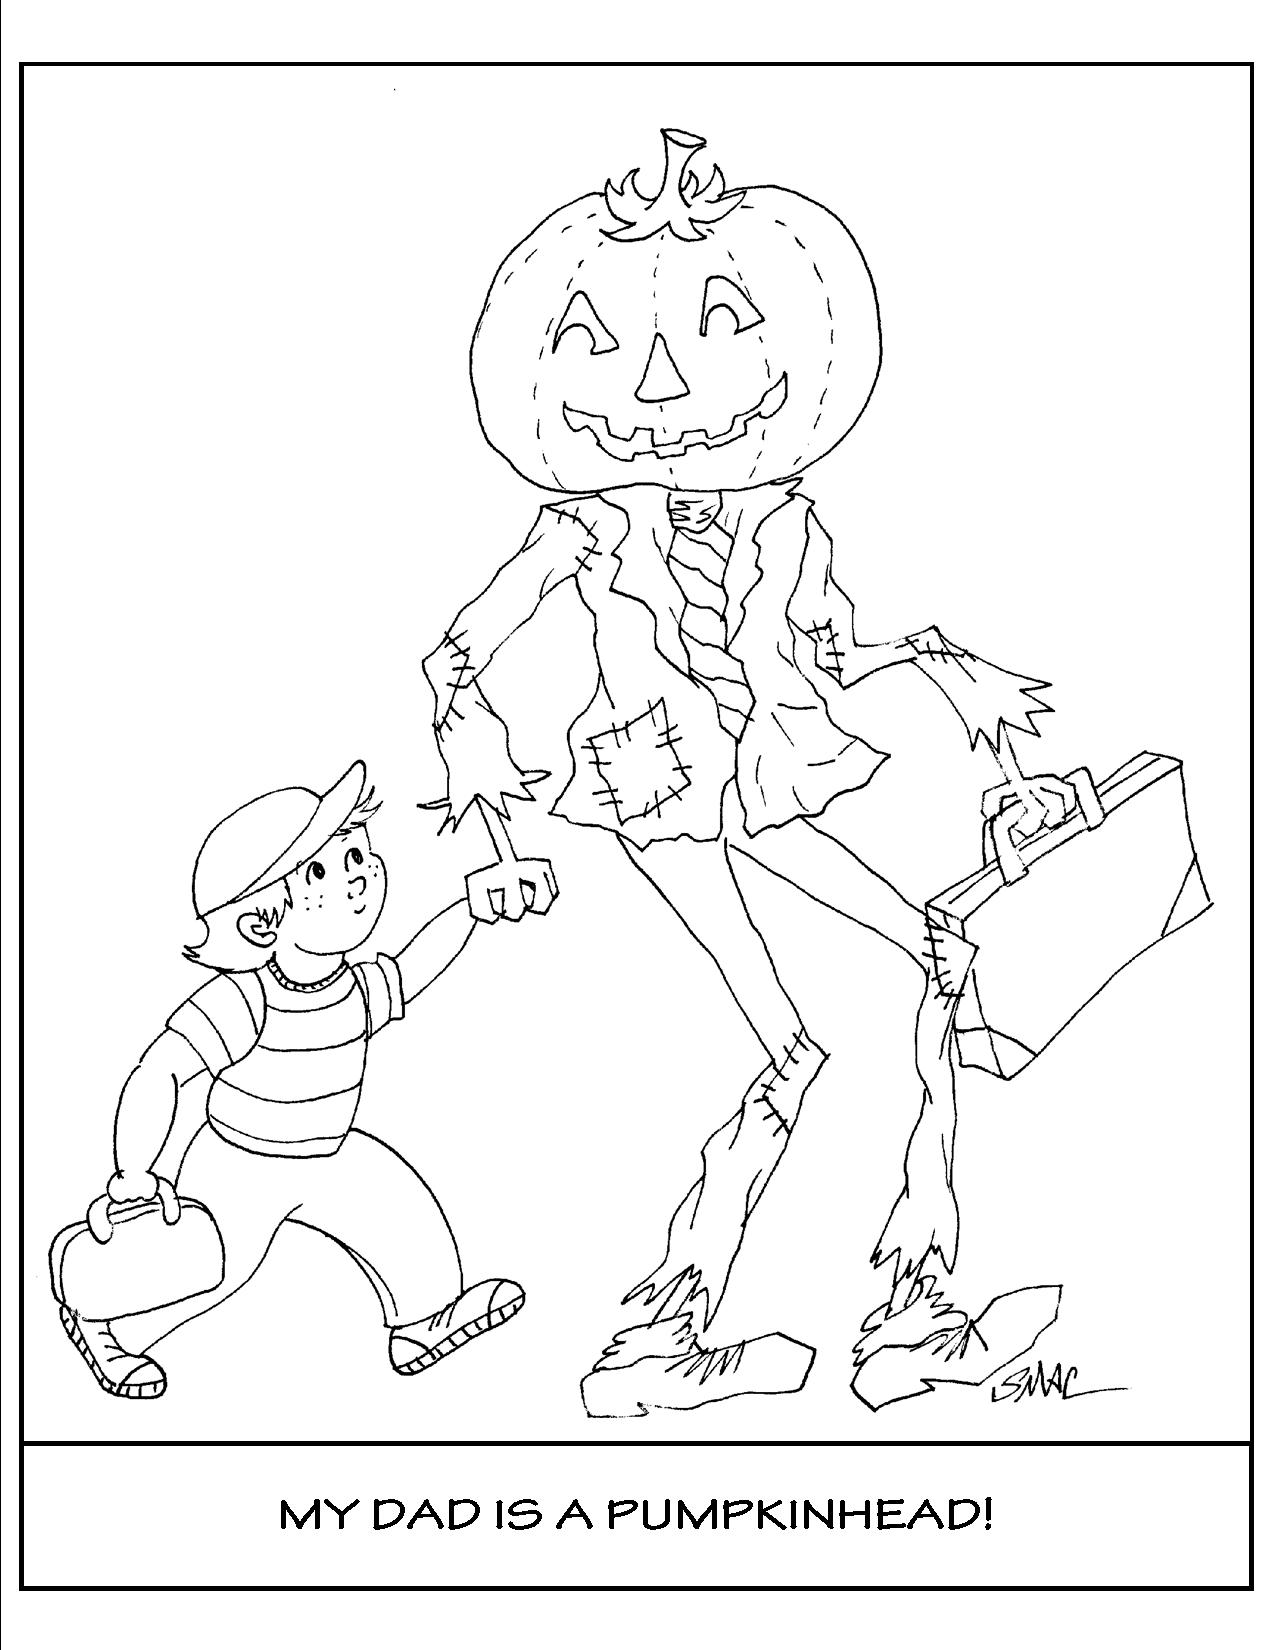 Halloween Coloring Pages - S.Mac's Place to Be